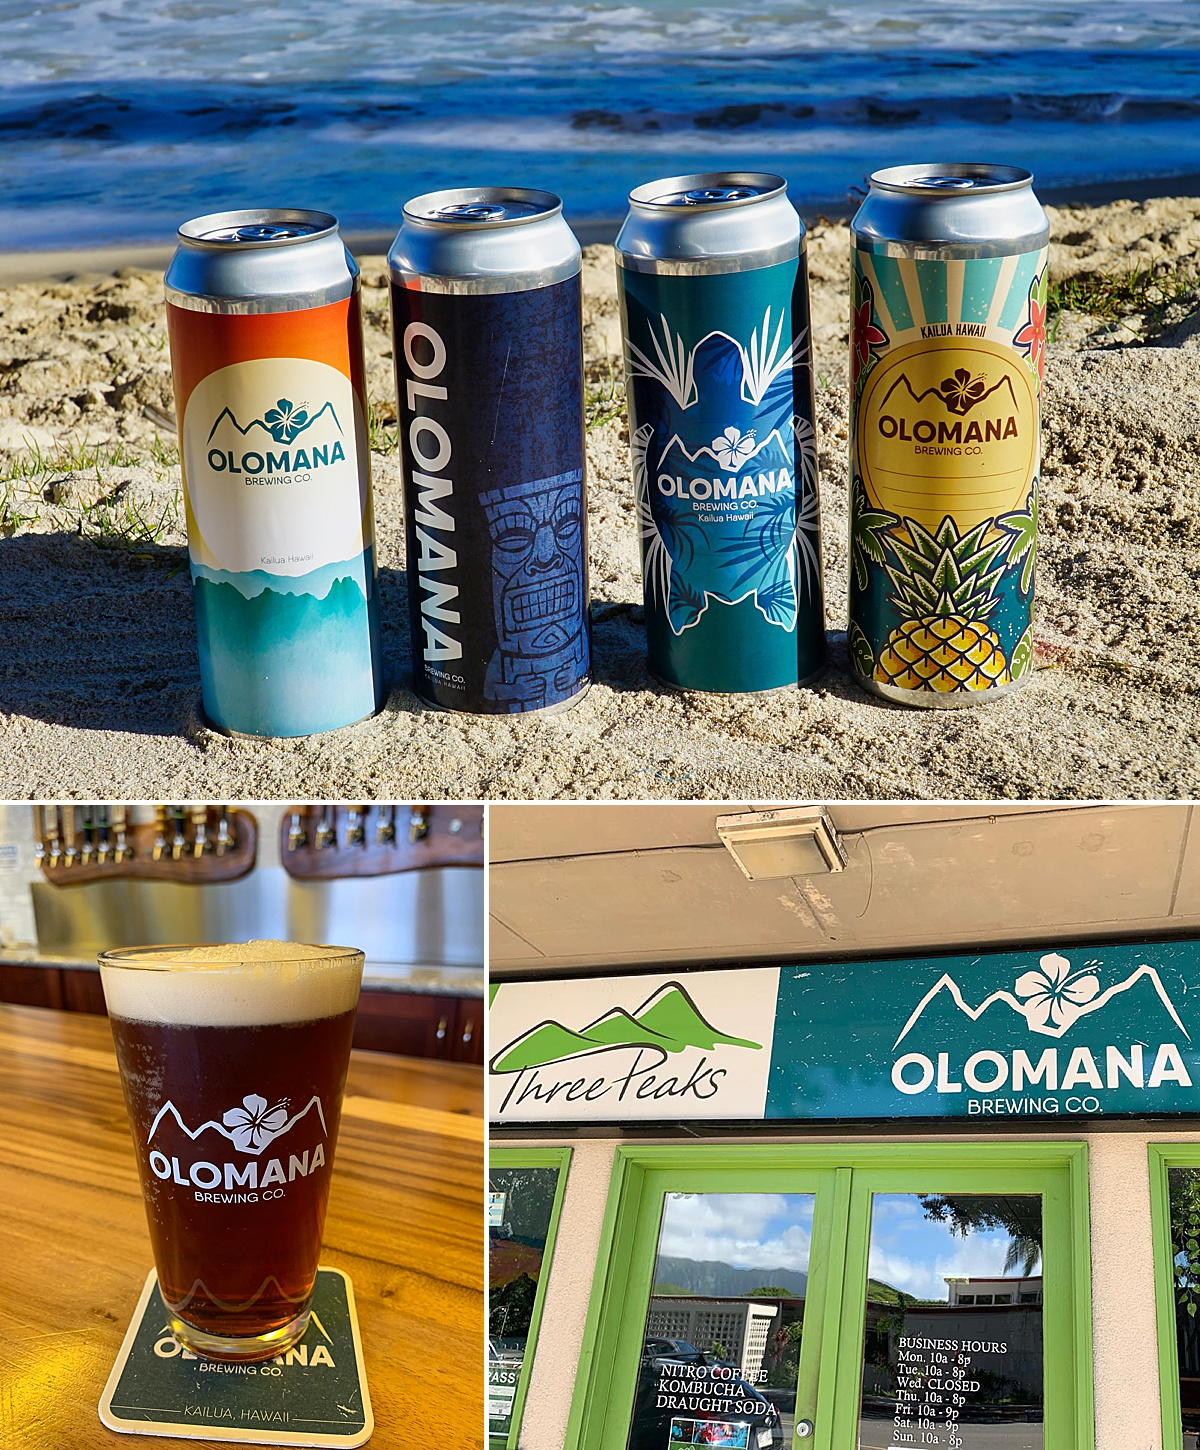 olomana brewing co macdaddy